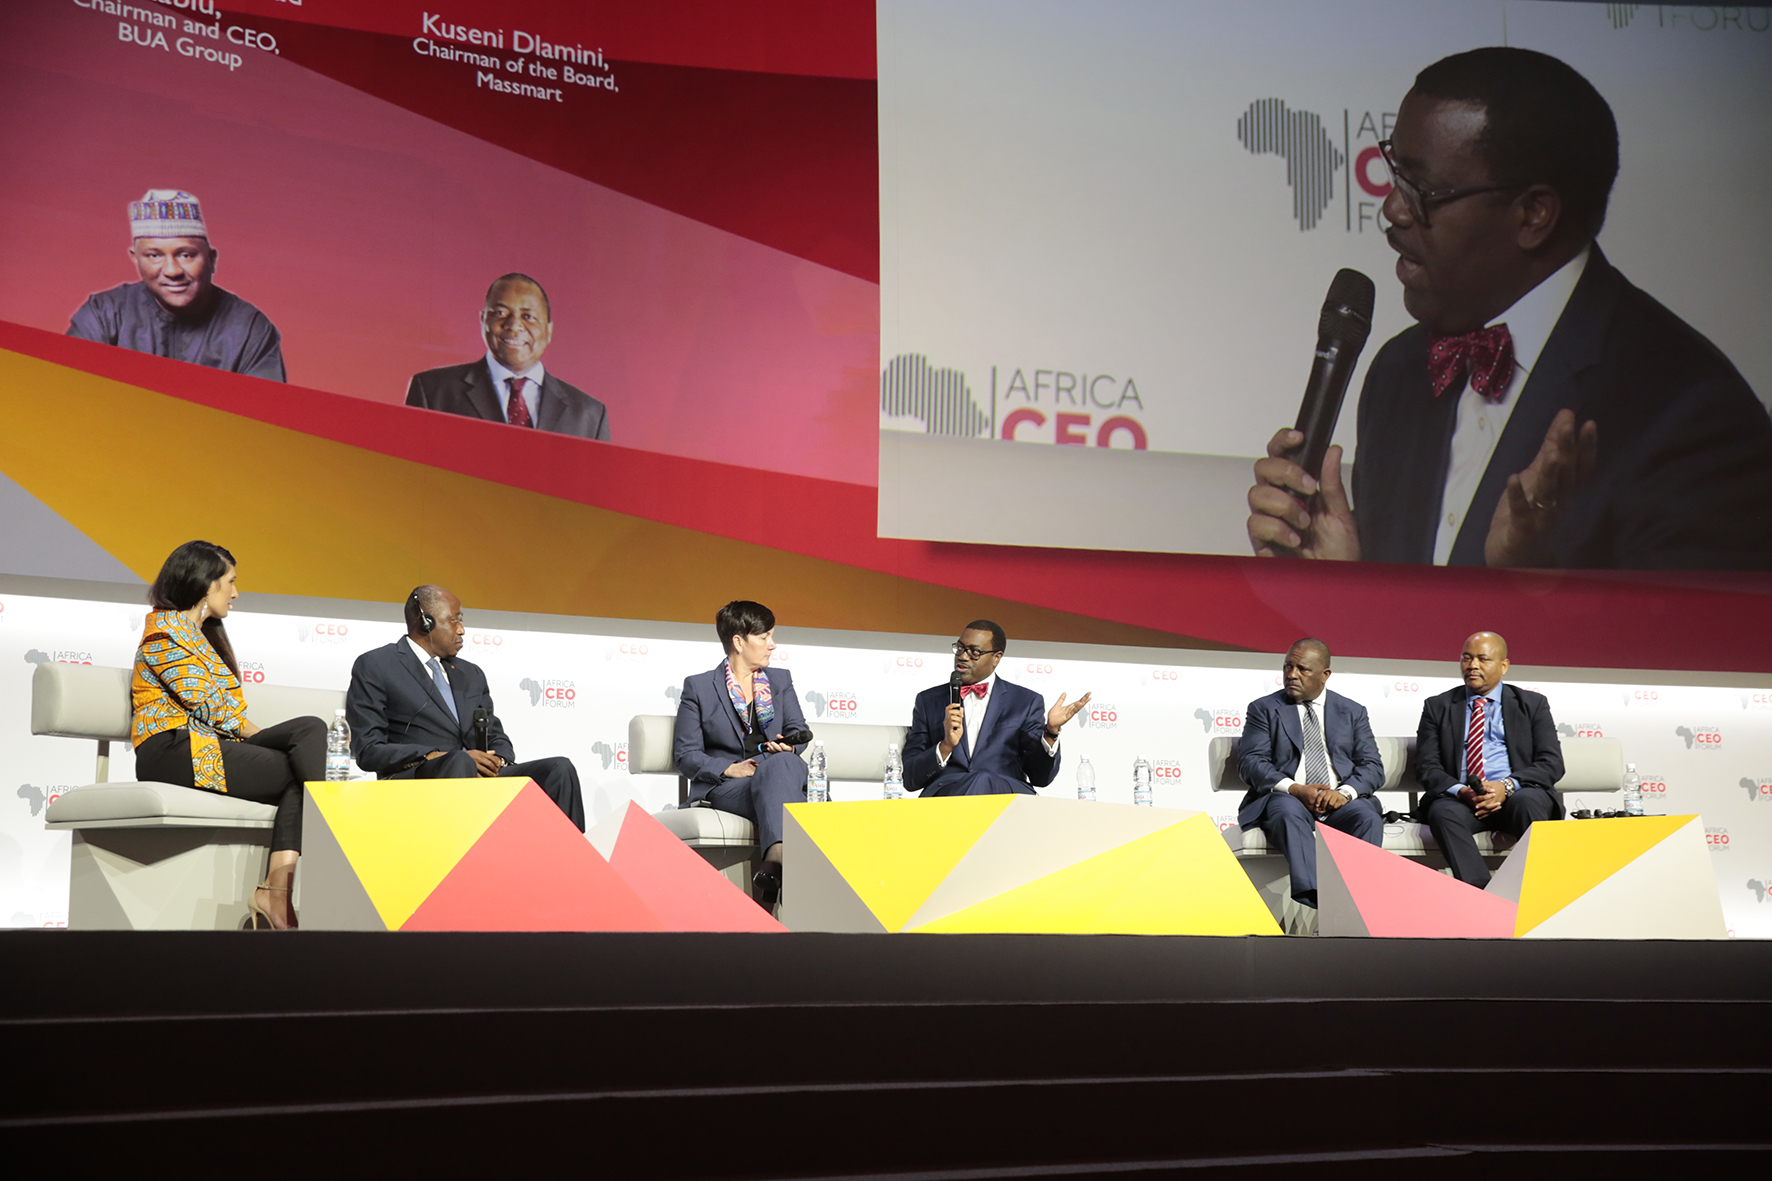 Africa must build digital infrastructure to compete in 4th Industrial Revolution